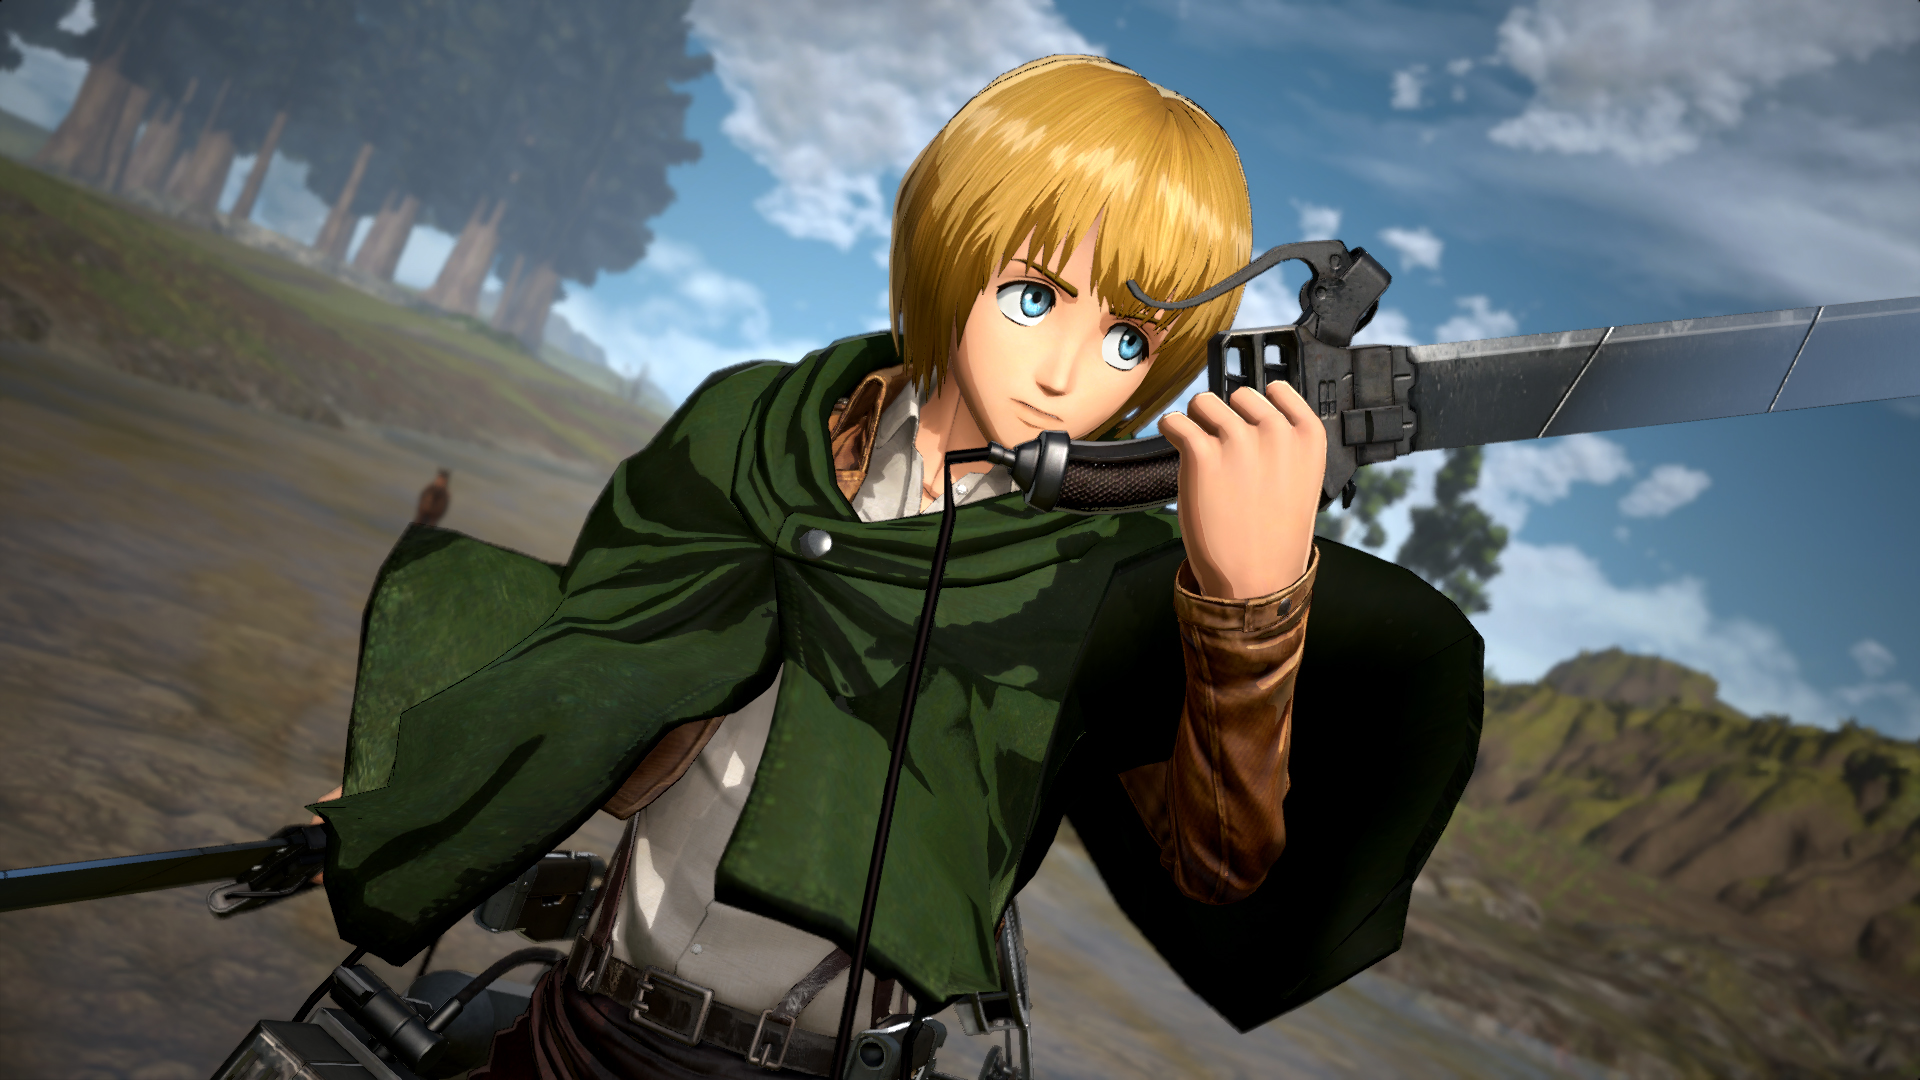 armin attack on titan